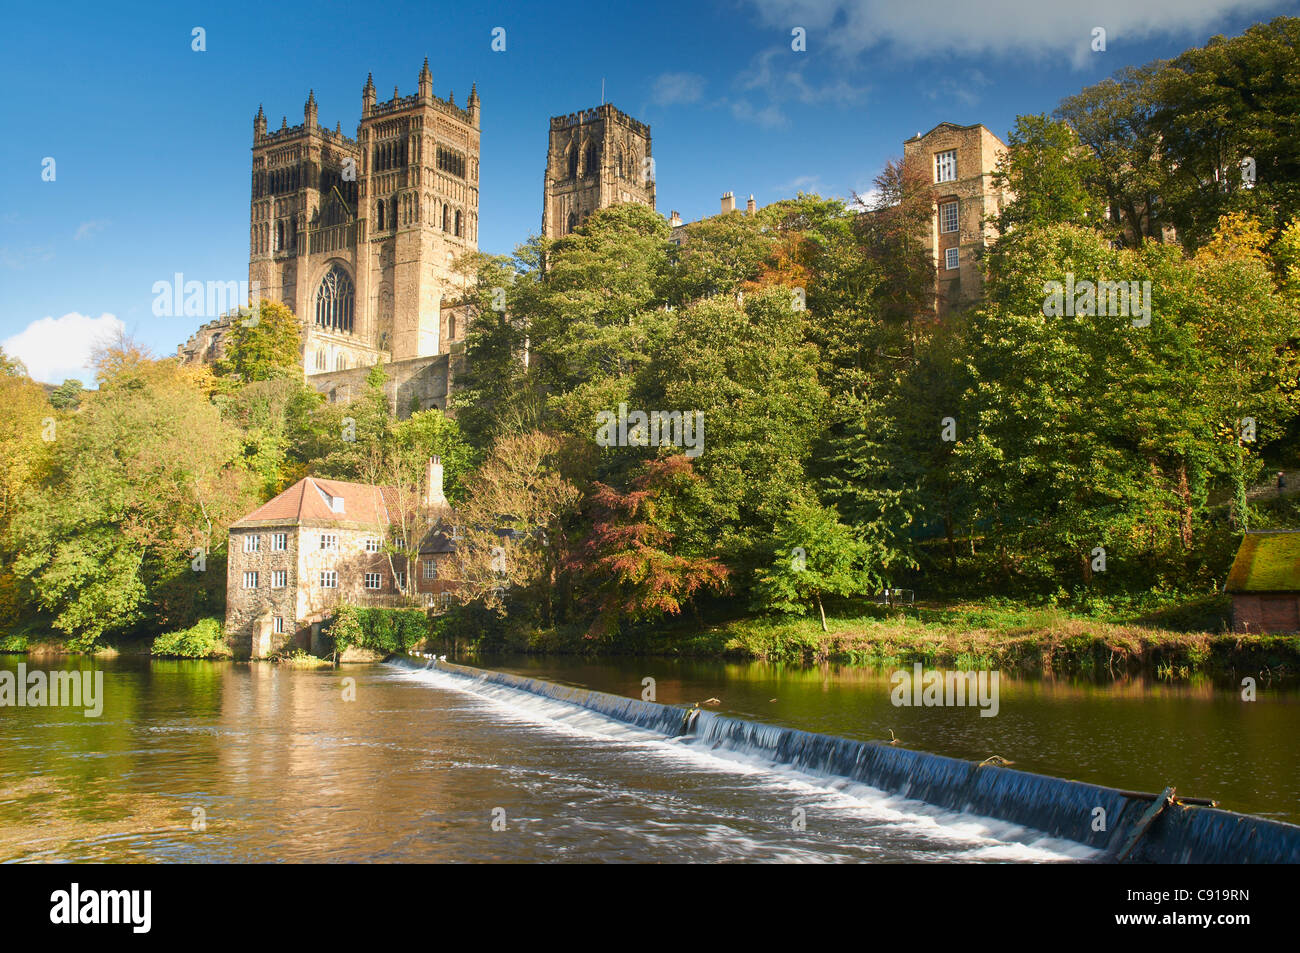 Durham Cathedral dominates the city of Durham. The tall towers of the Norman cathedral can be seen from all around - Stock Image